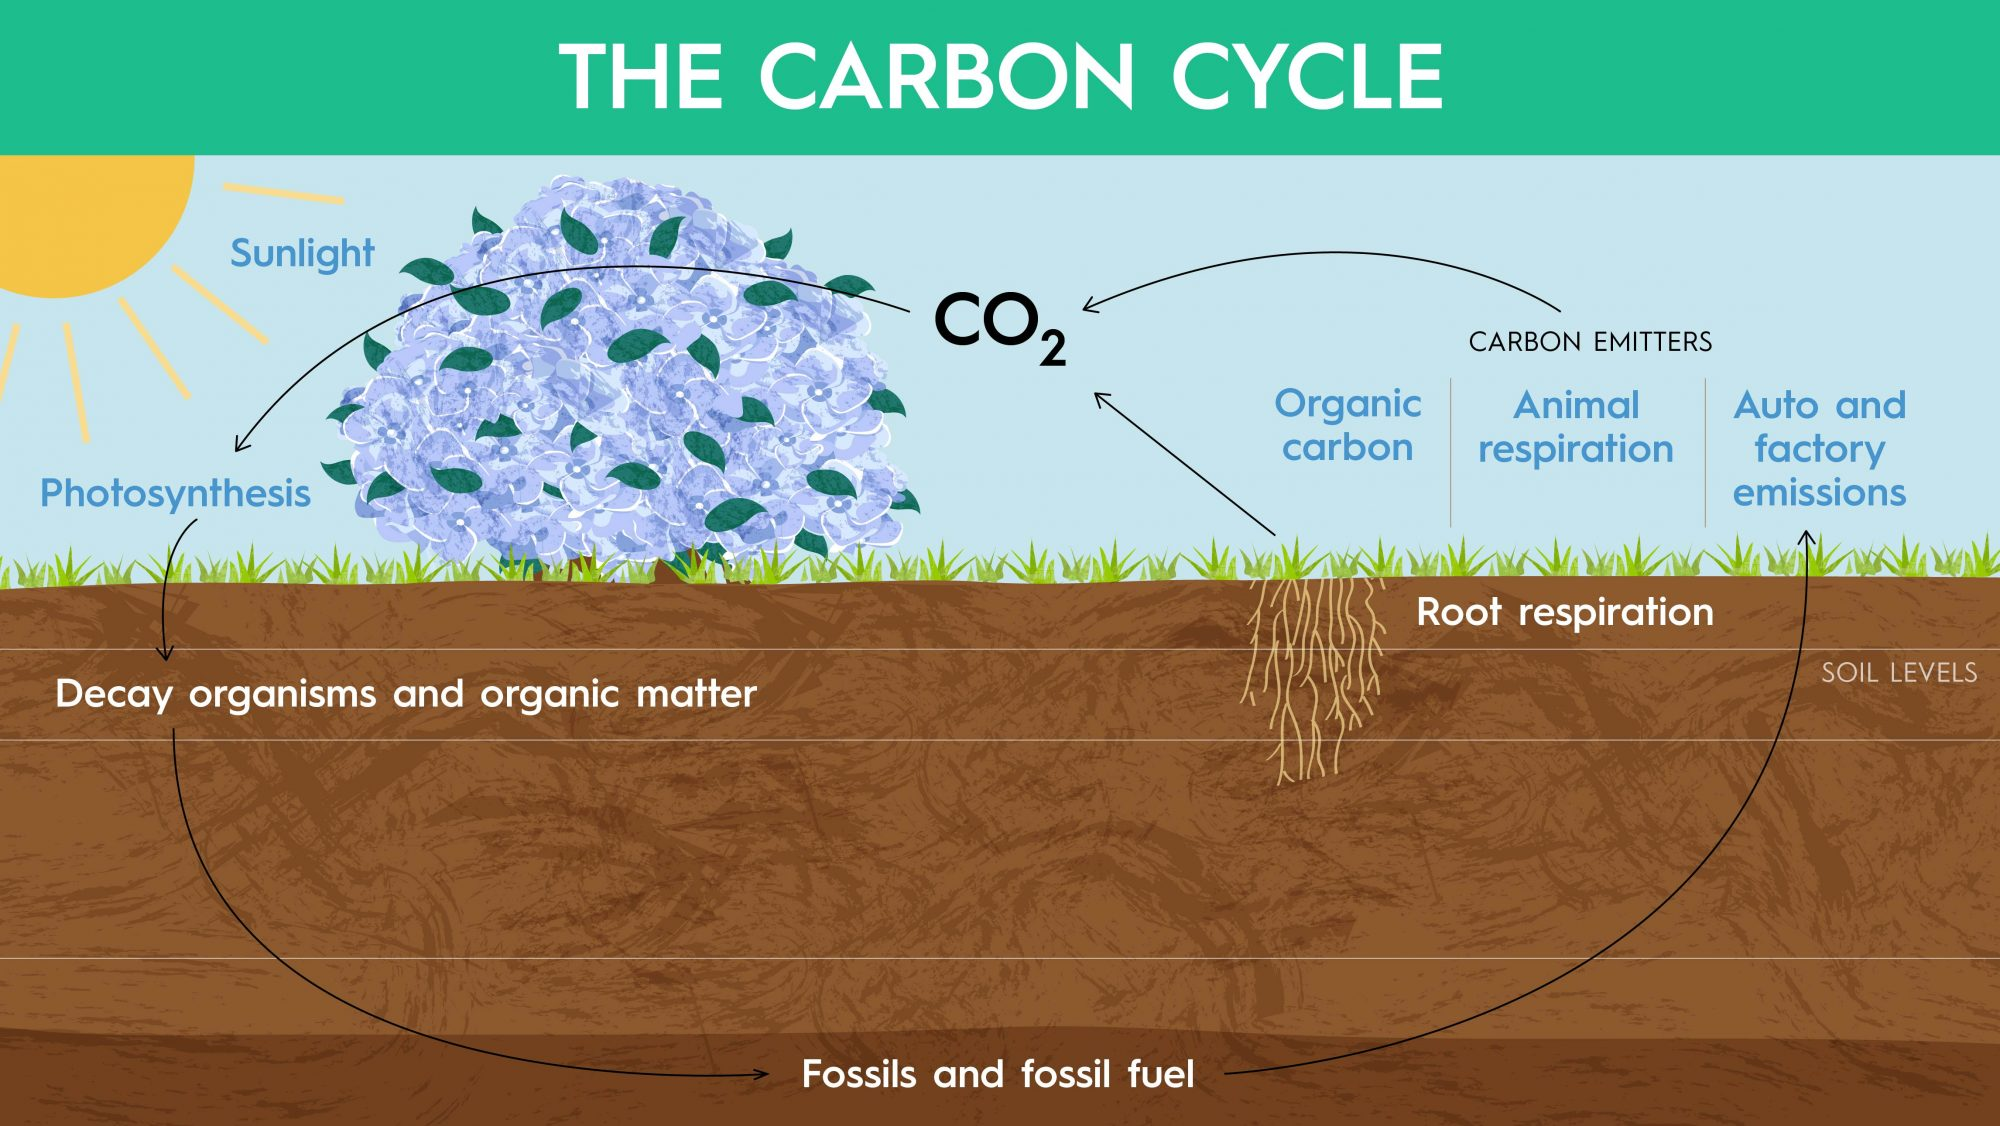 illustration of carbon cycle with sun, plants, soil